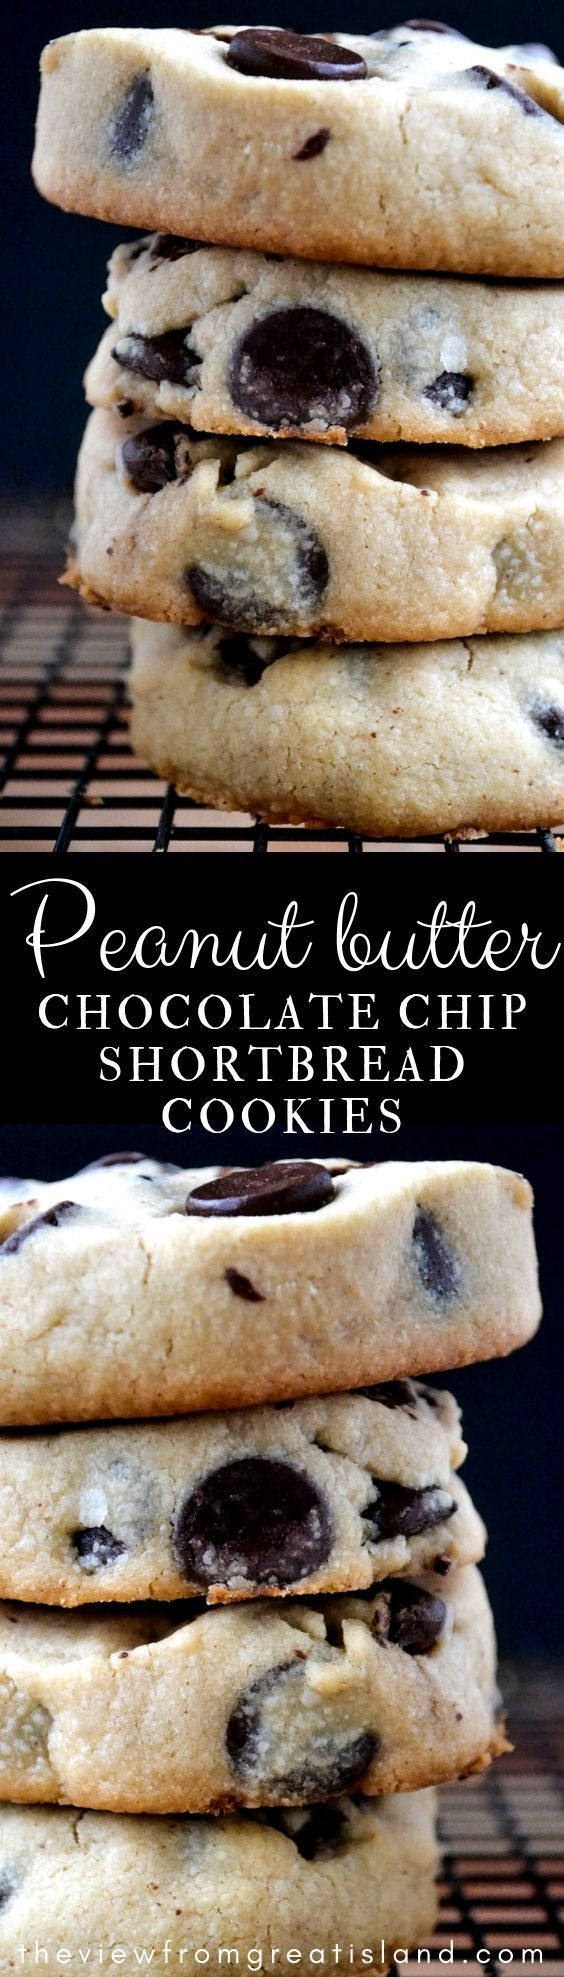 Peanut Butter Chocolate Chip Shortbread Cookies are an easy to make slice and bake chocolate chip cookie recipe with a melt in your mouth texture Peanut Butter Chocolate...